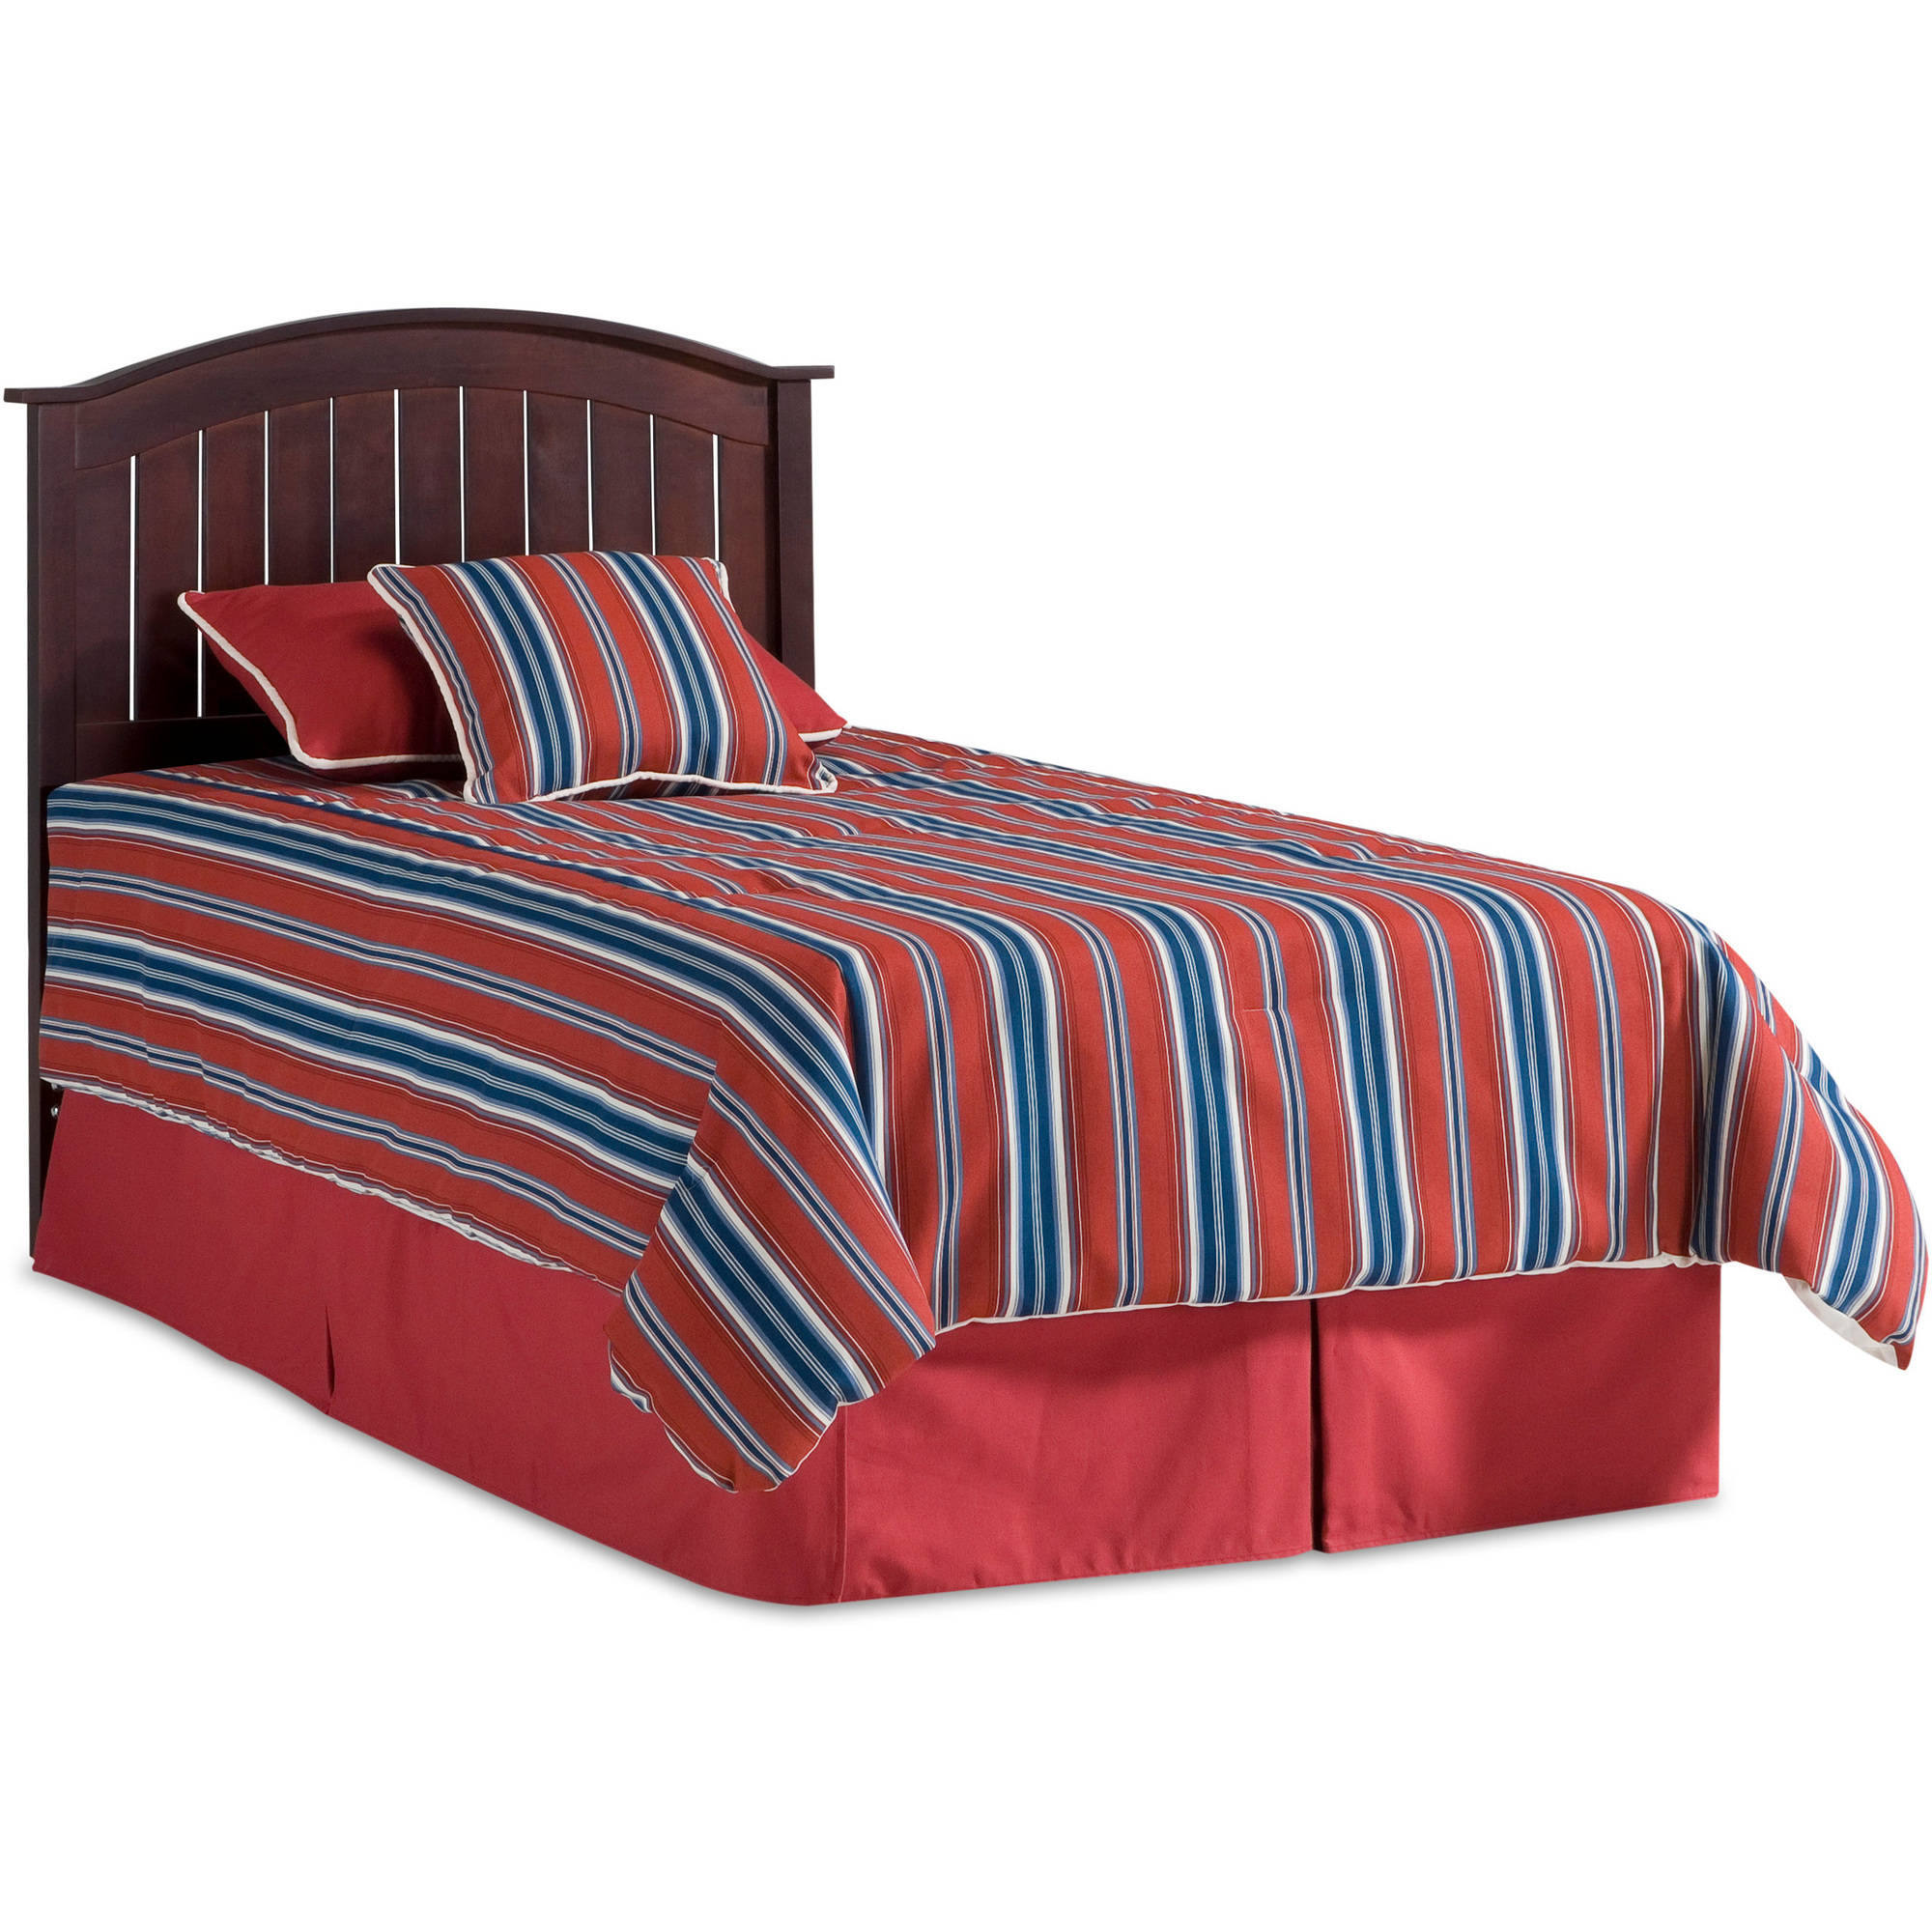 Fashion Bed Group by Leggett & Platt Finley Twin Headboard, Multiple Finishes